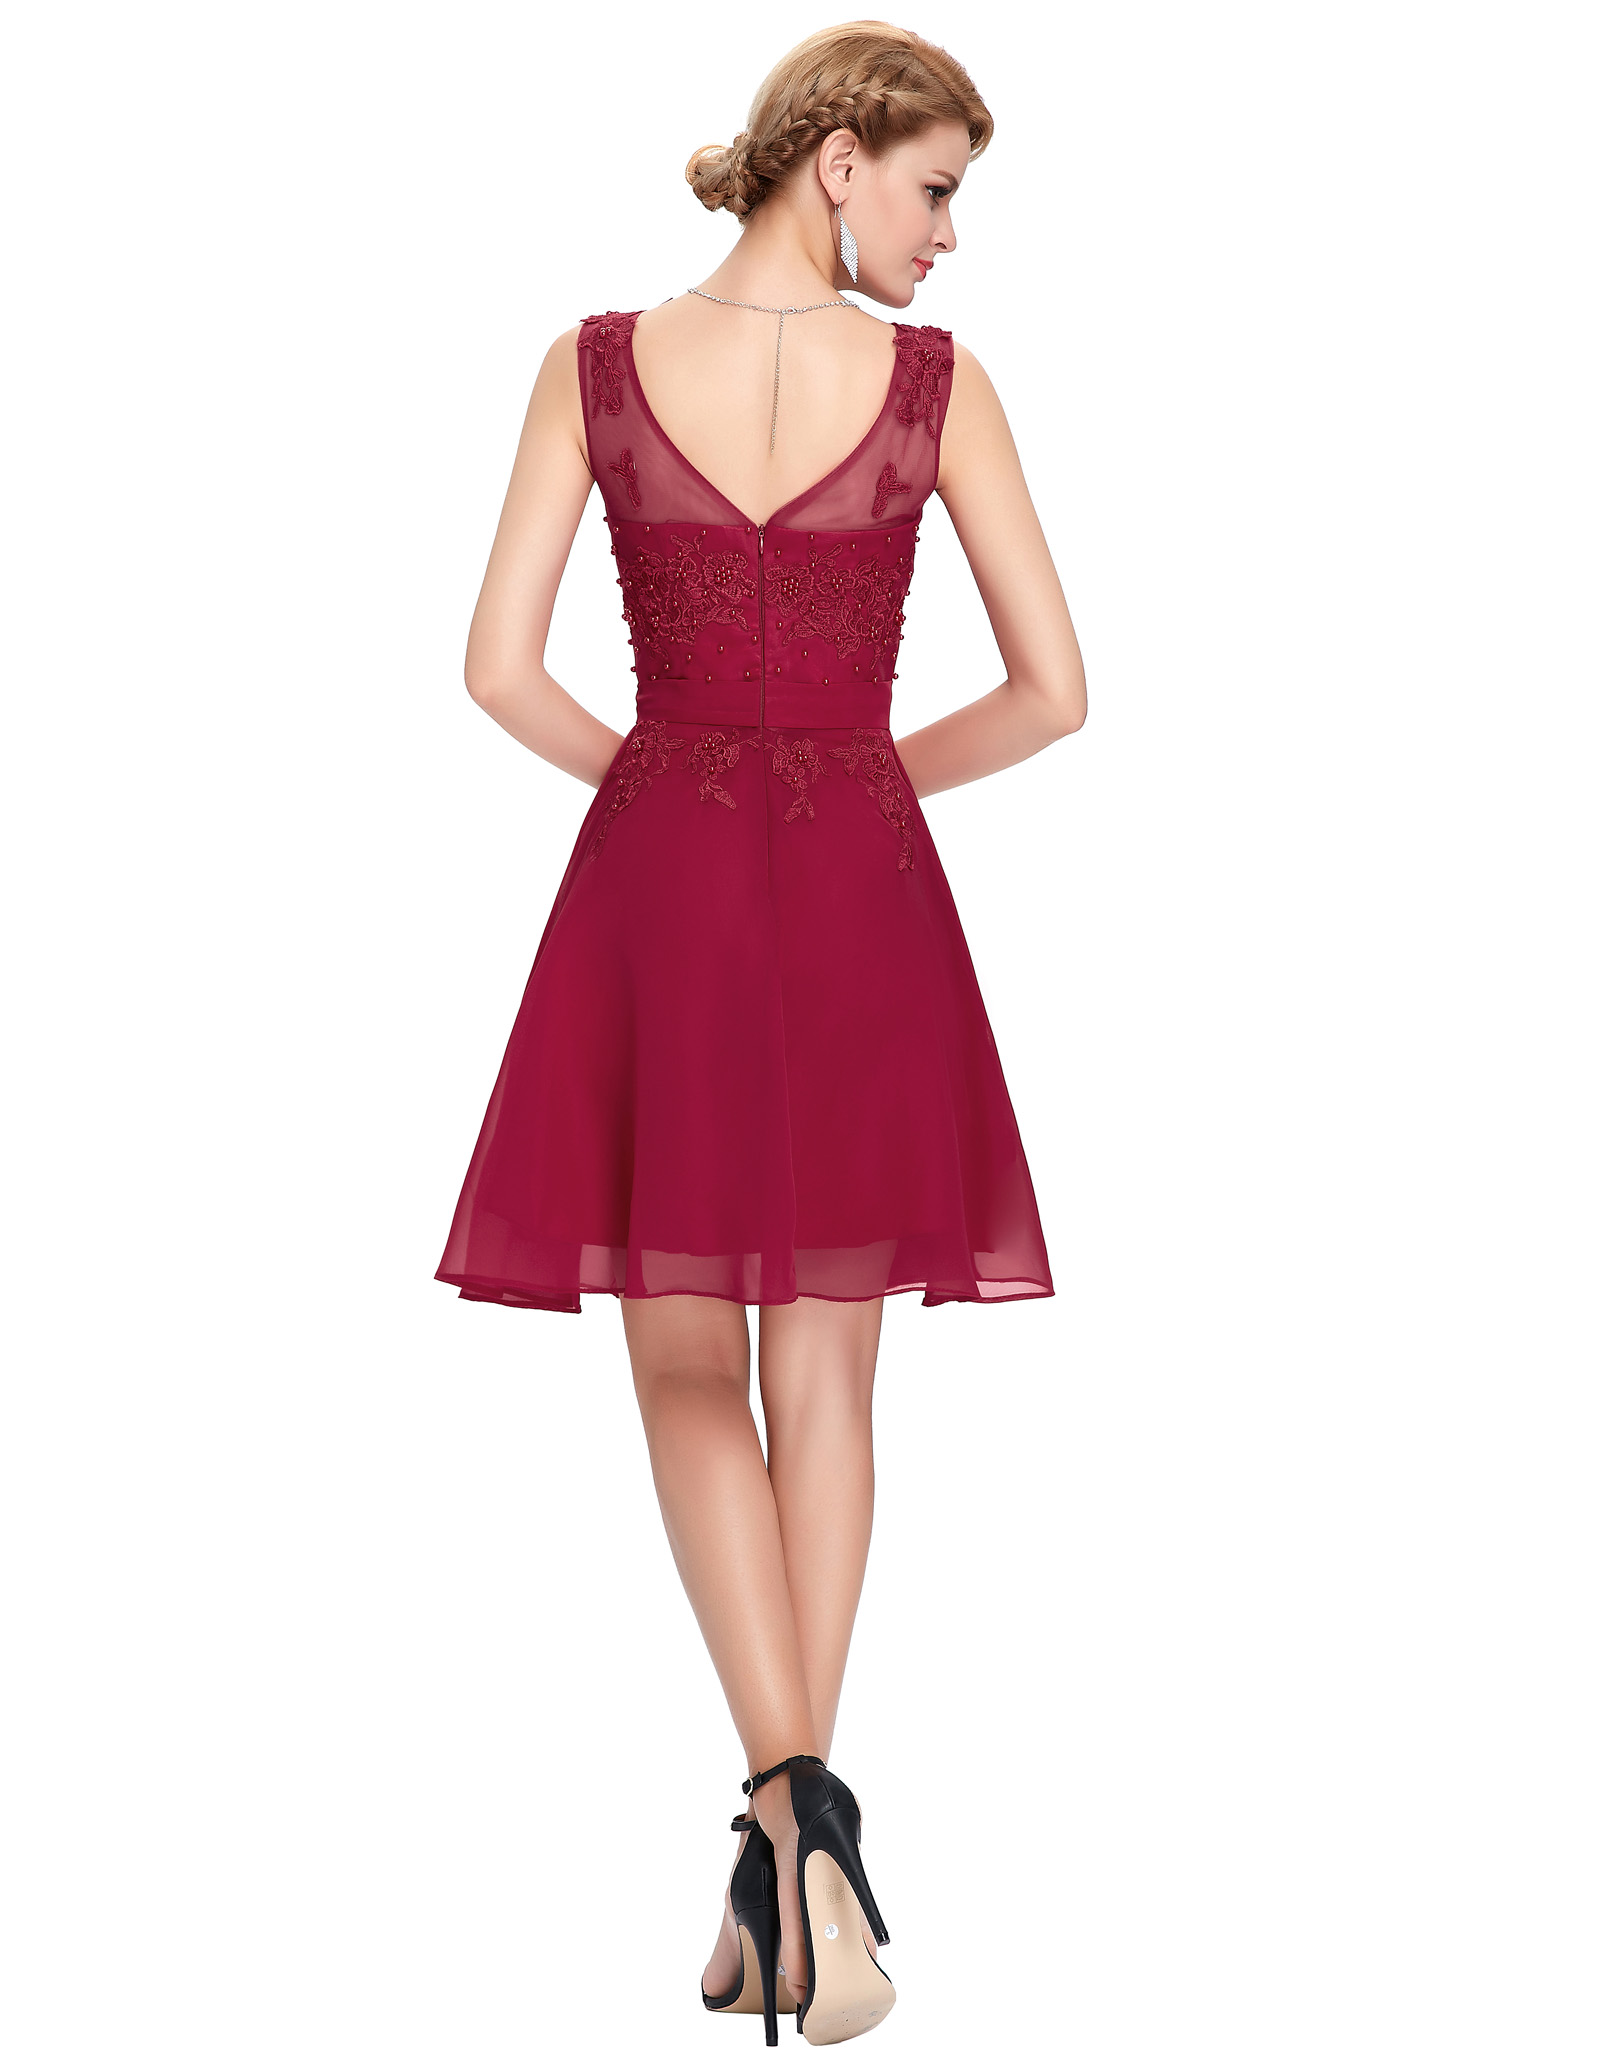 Cocktail dresses 2017 grace karin chiffon appliques beaded elegant cocktail dresses 2016 grace karin chiffon appliques beaded elegant burgundy black short cocktail dresses cheap party dress al63 ombrellifo Image collections